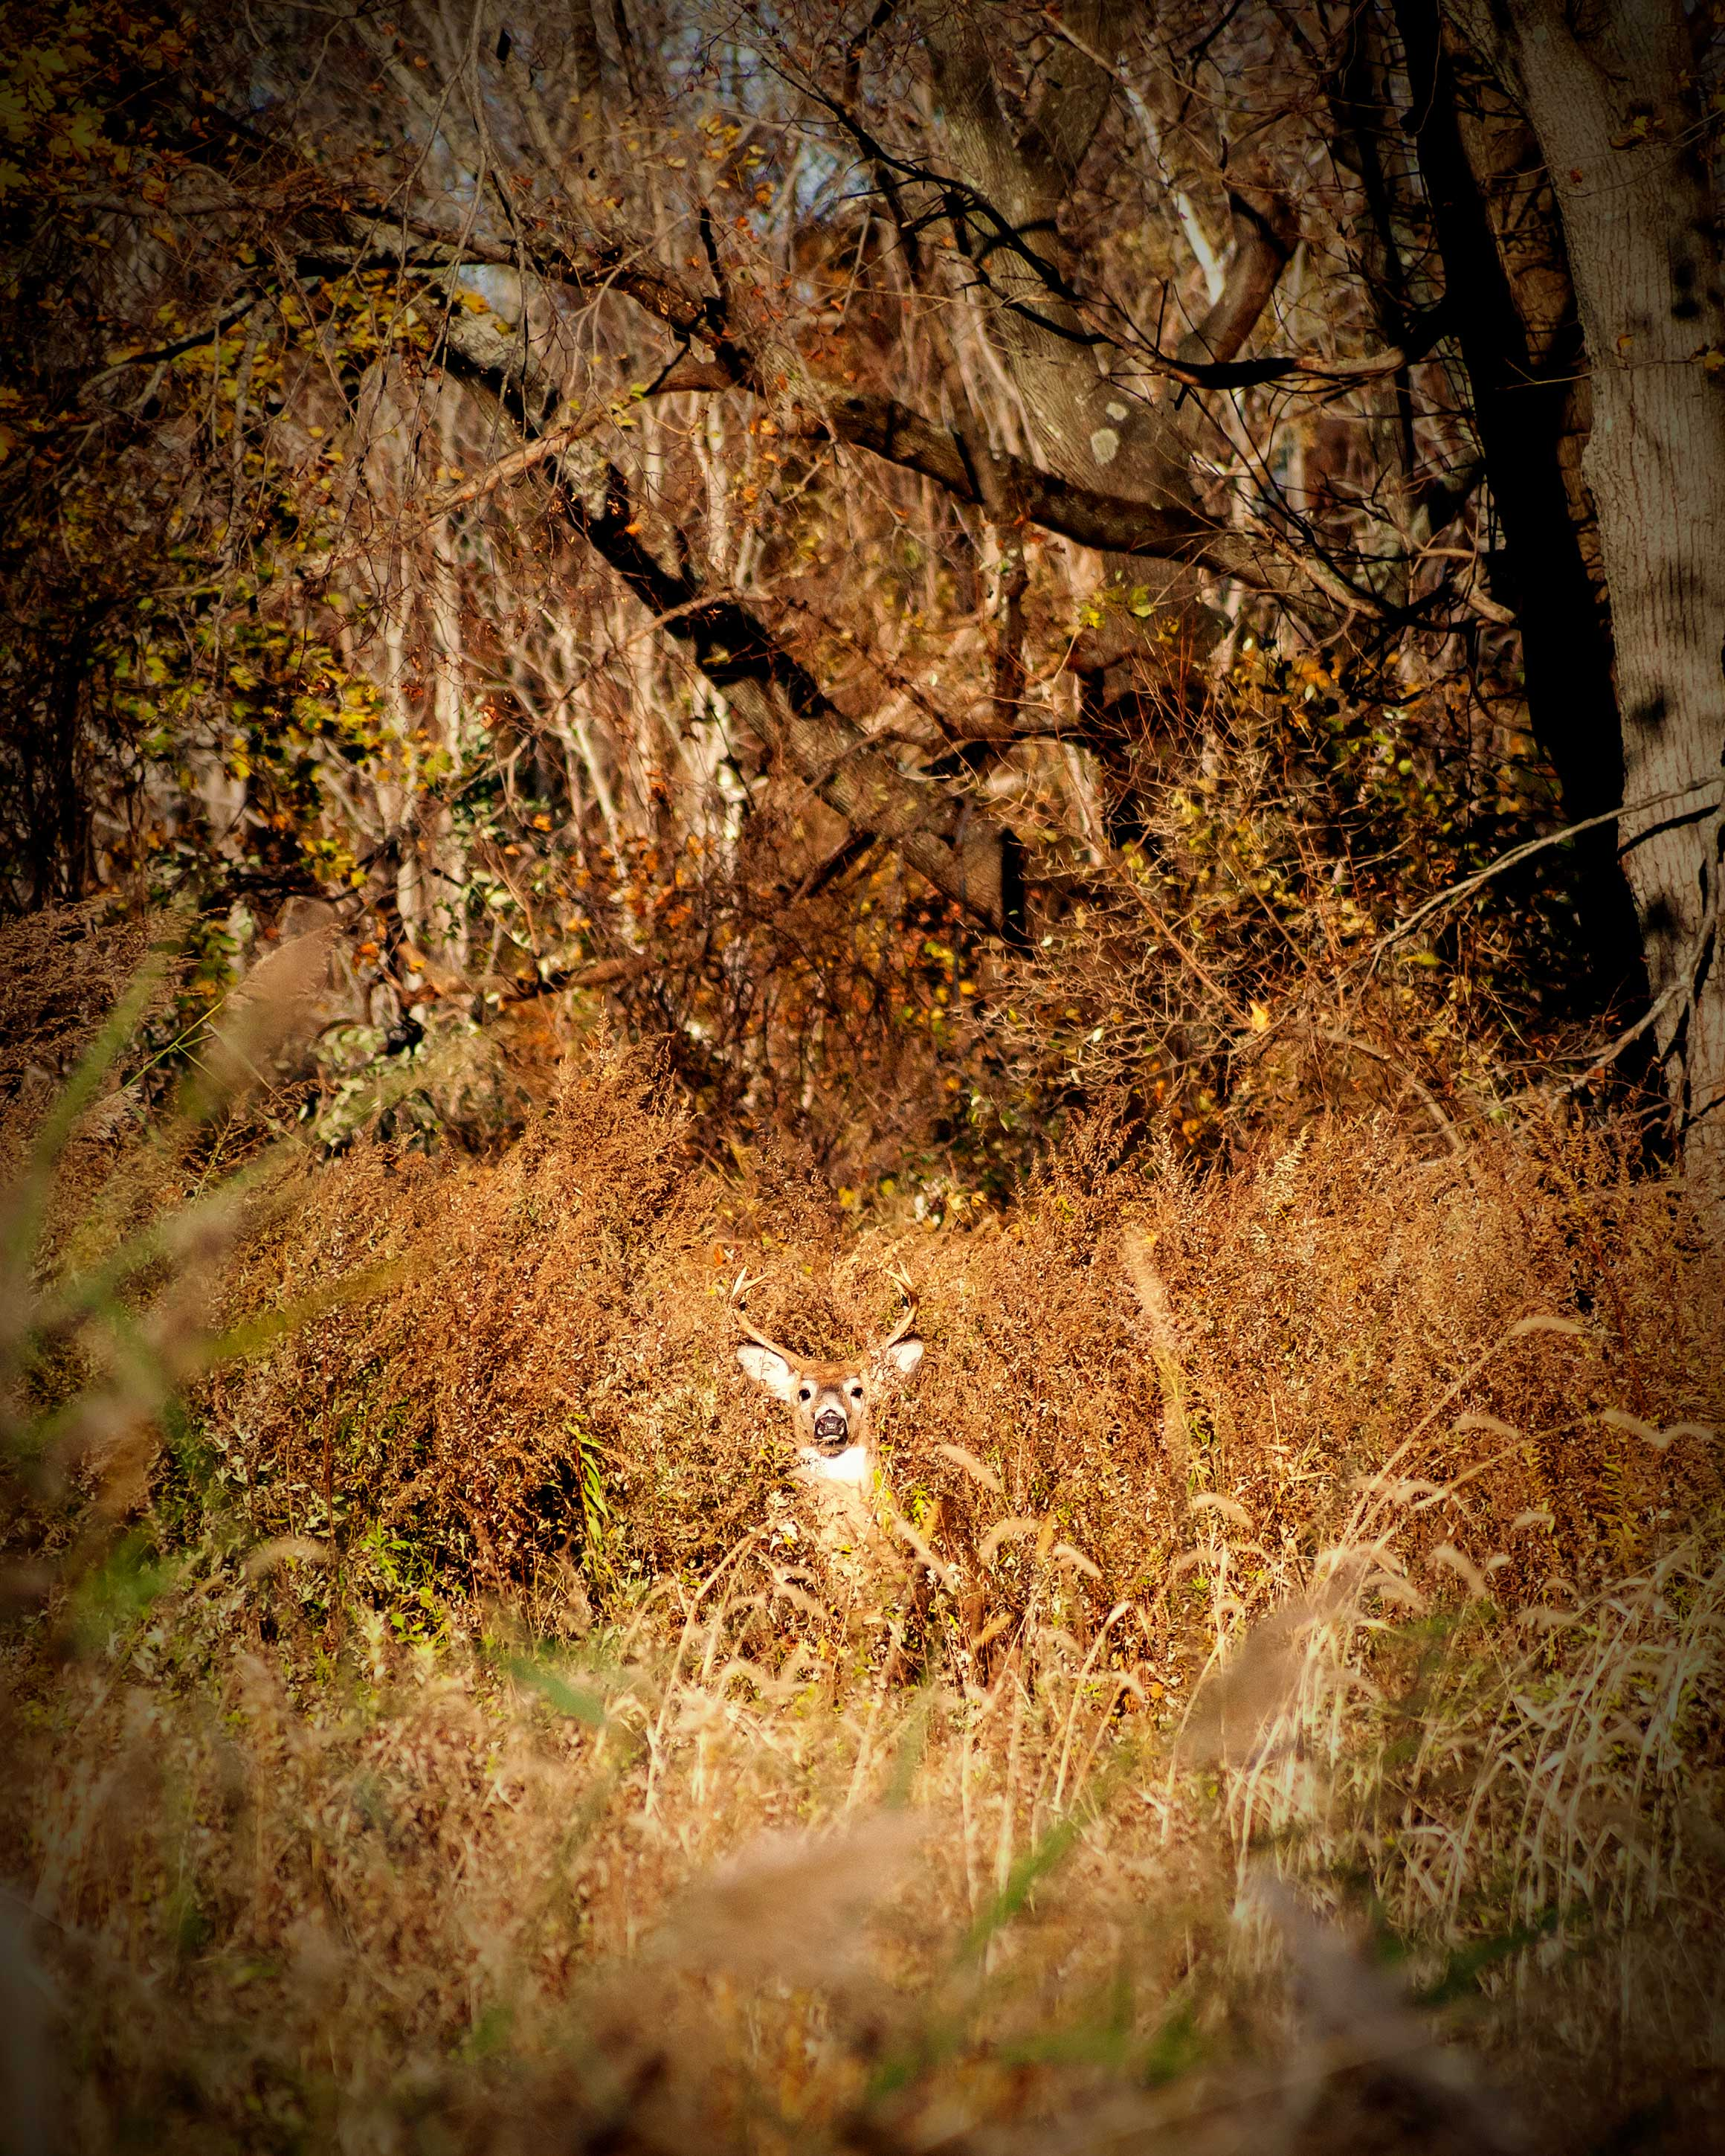 A buck standing in the forest